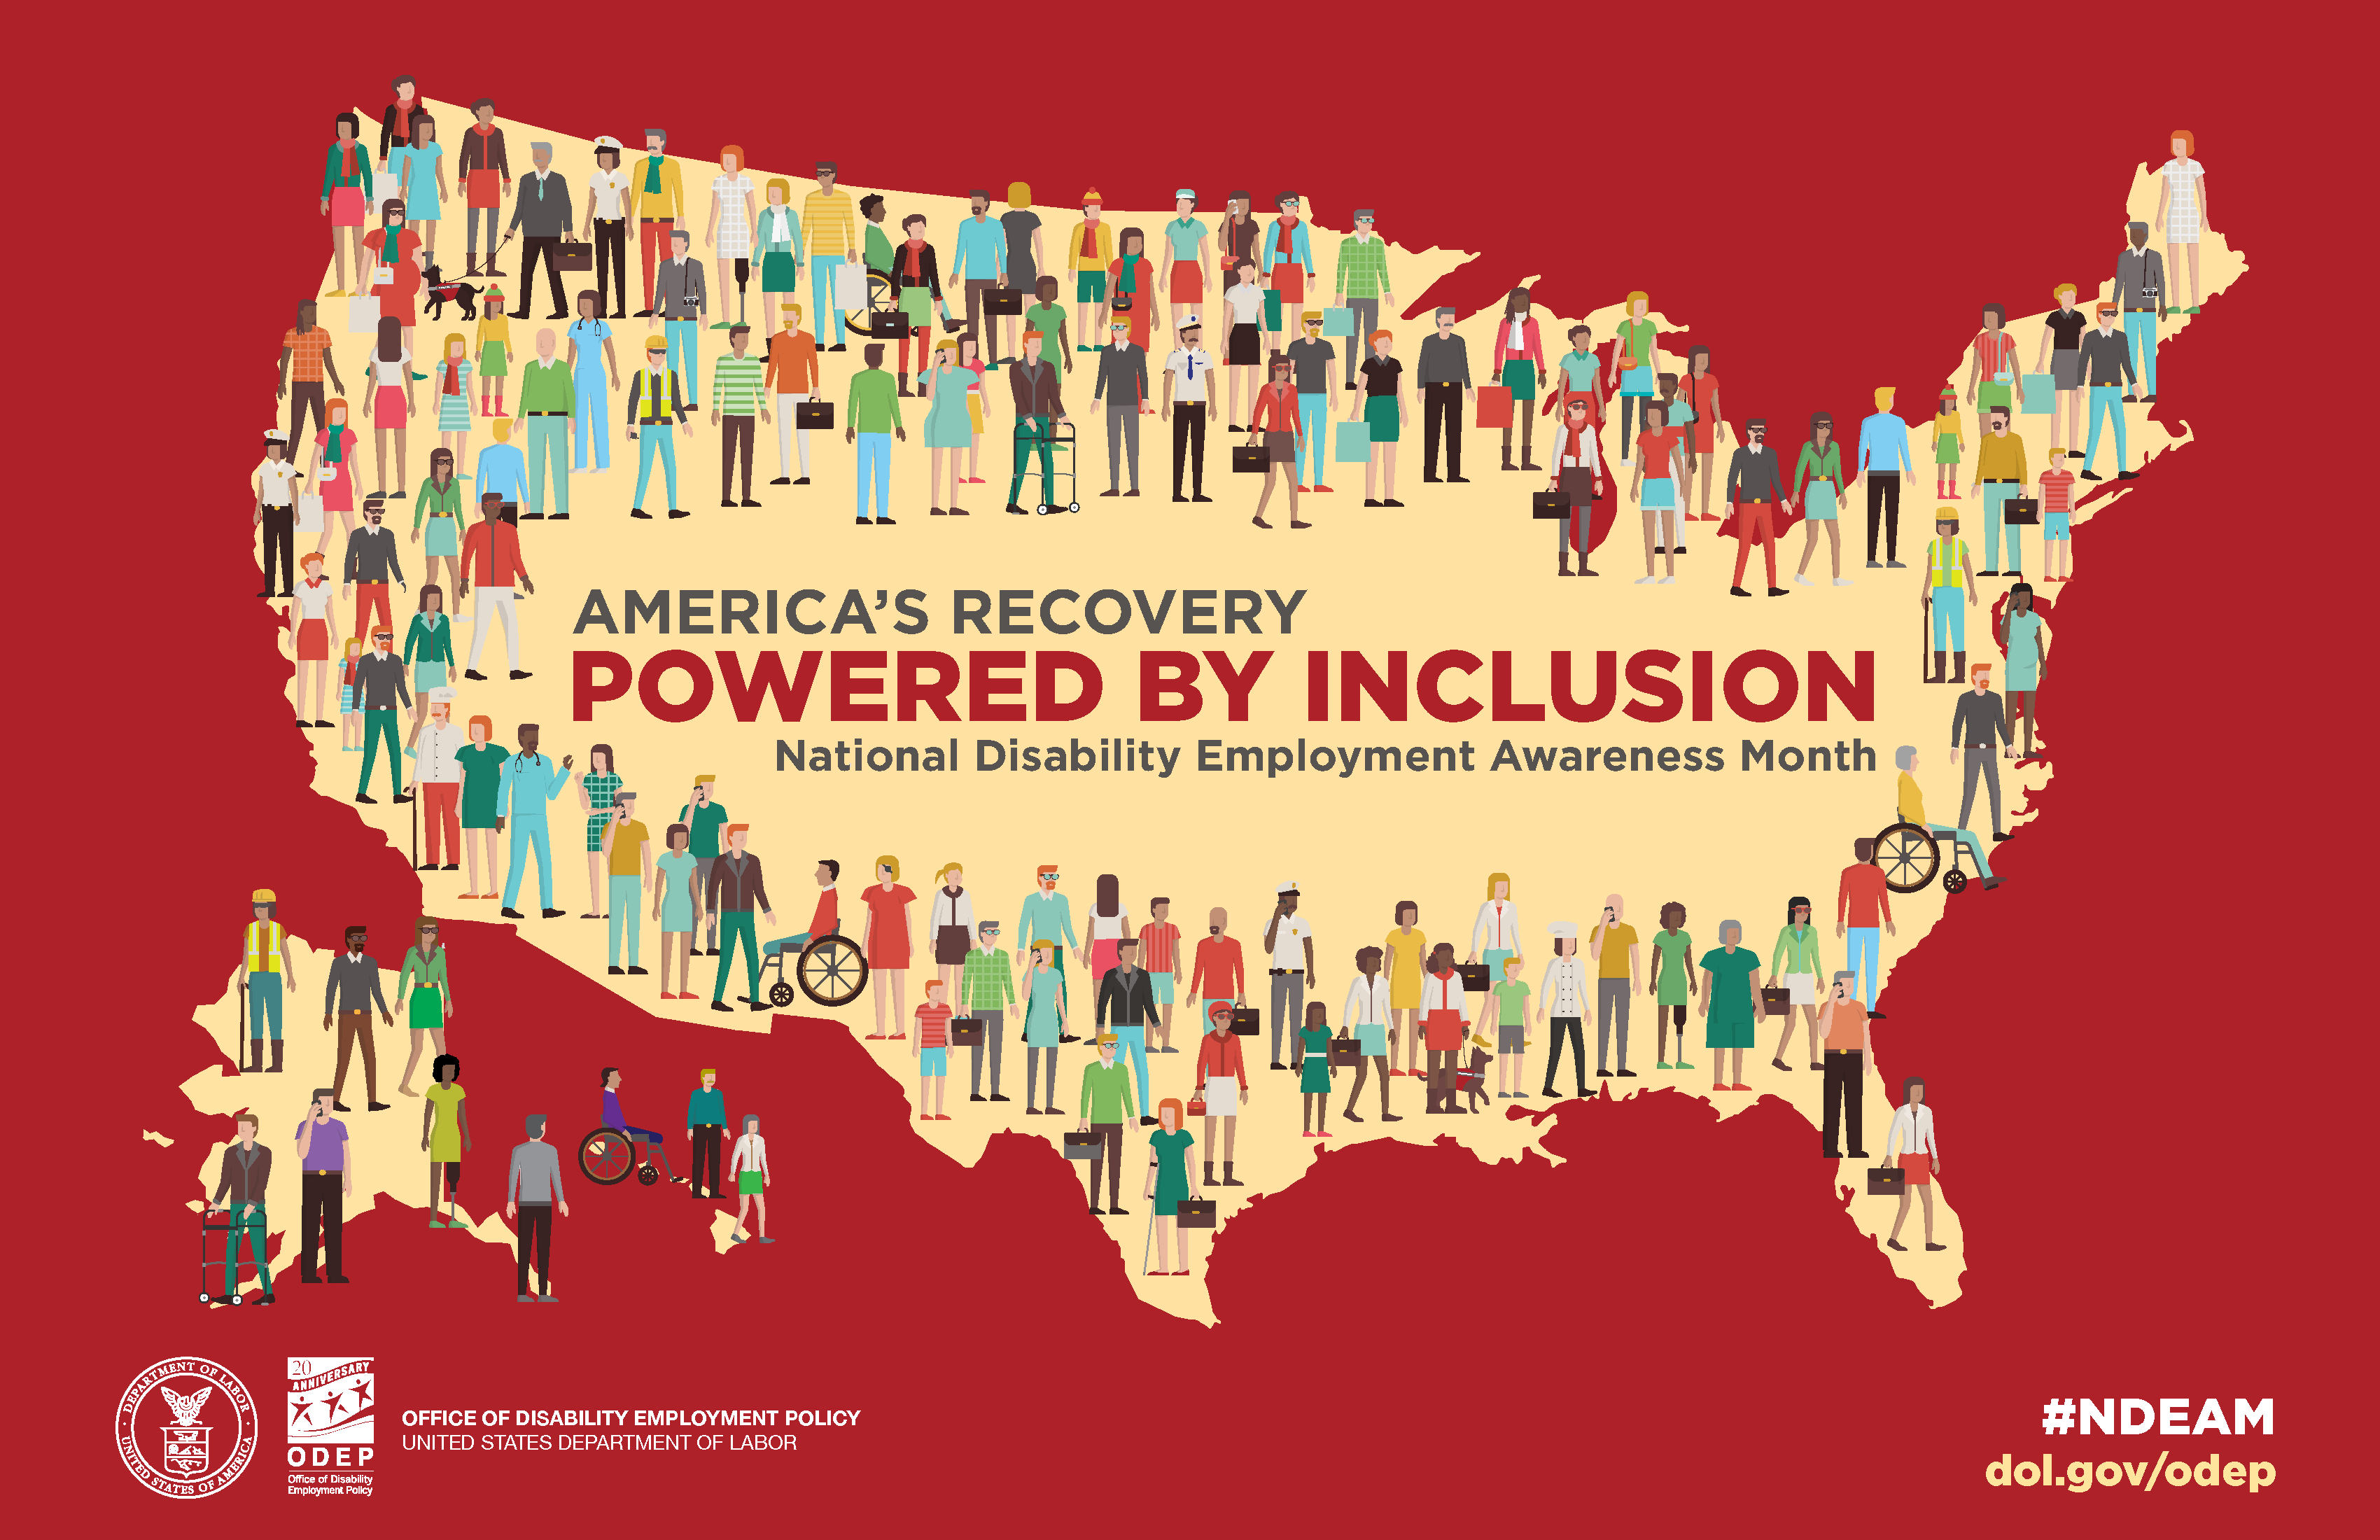 Powered by Inclusion